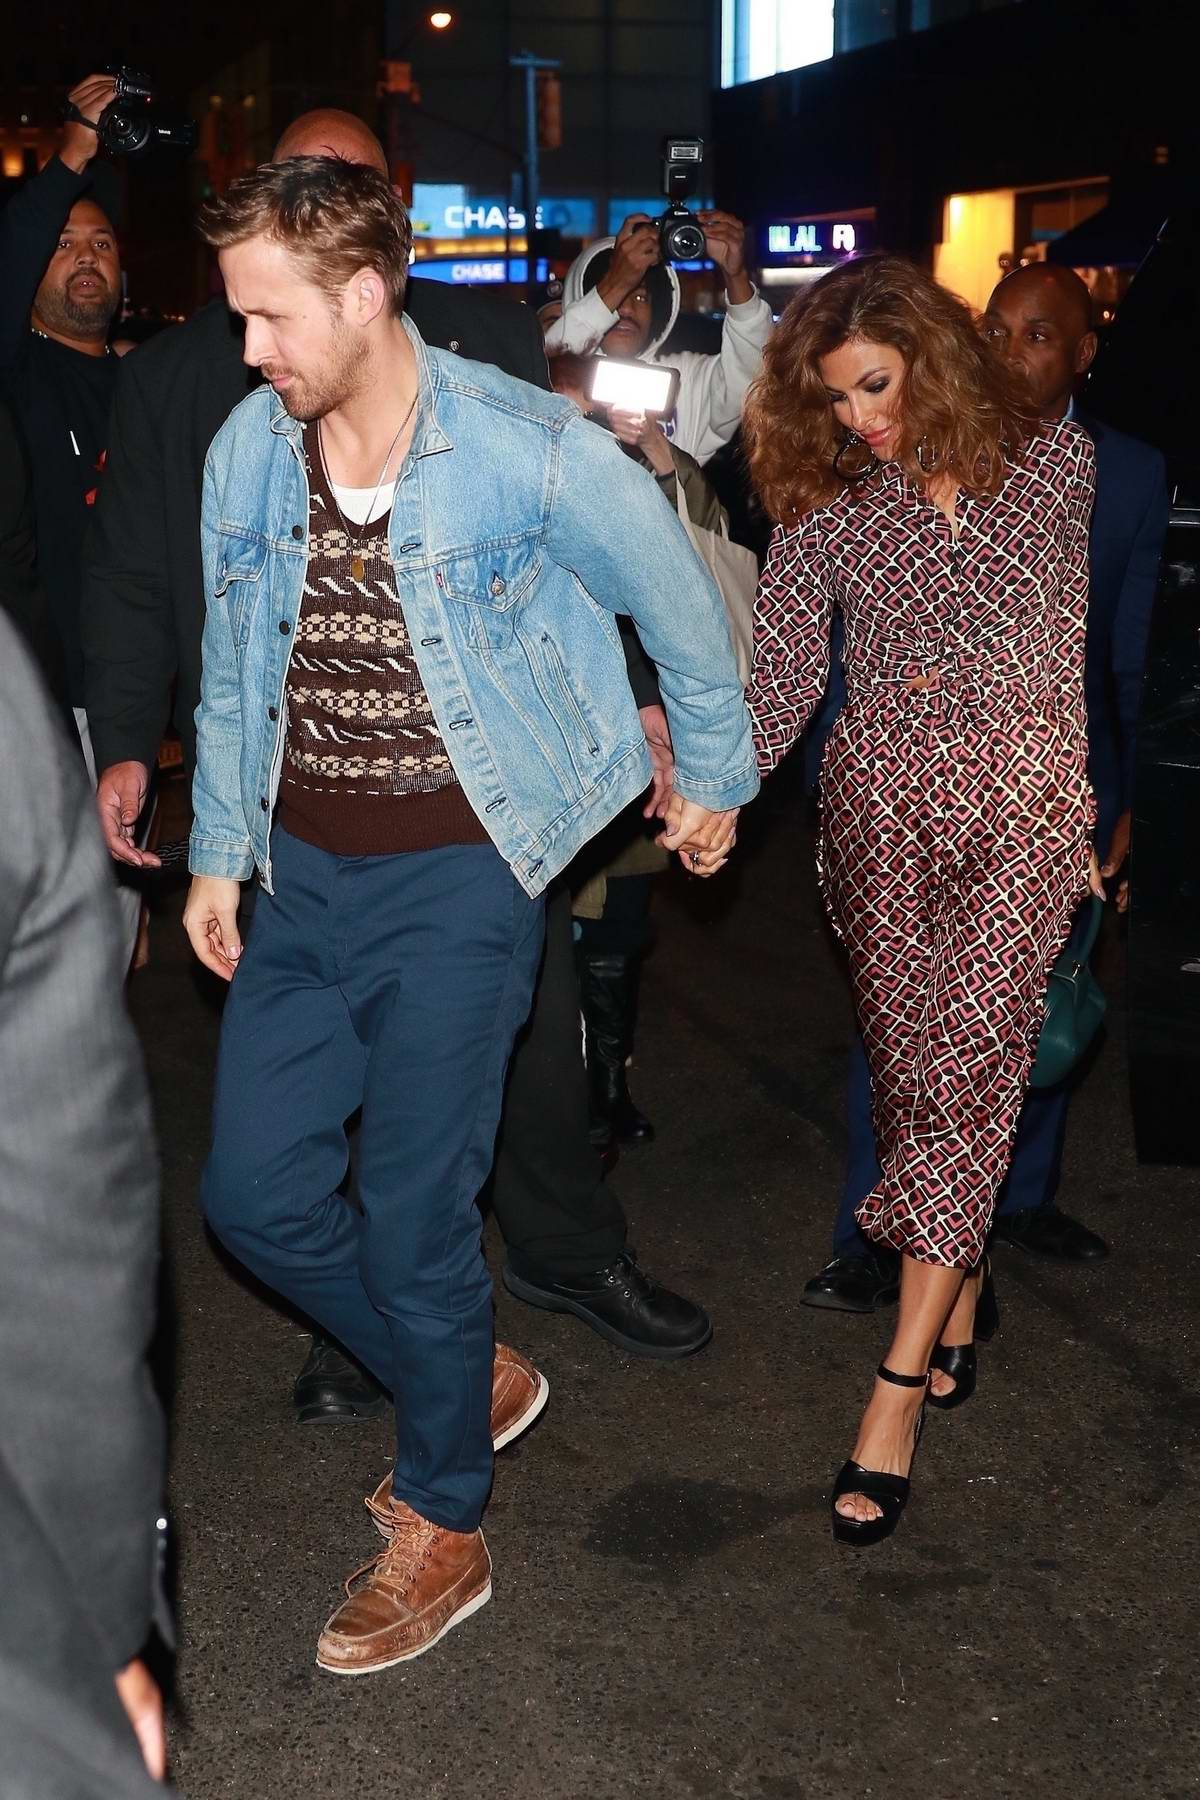 Eva Mendes and Ryan Gosling arrives for SNL after-party at TAO Restaurant in New York City